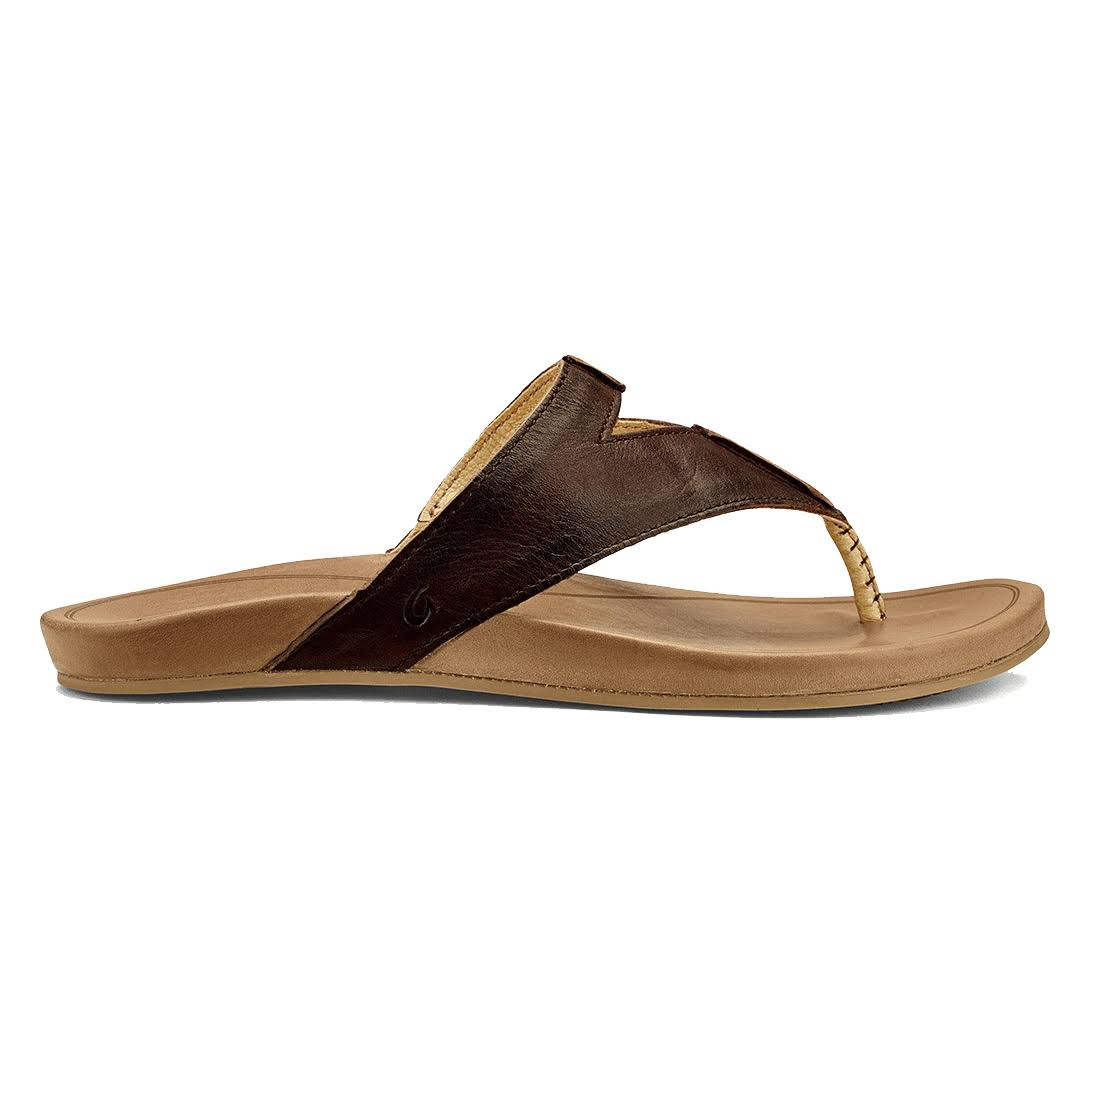 OluKai Women's 20321 Lala Sandals - Kona Coffee/Tan, USW8